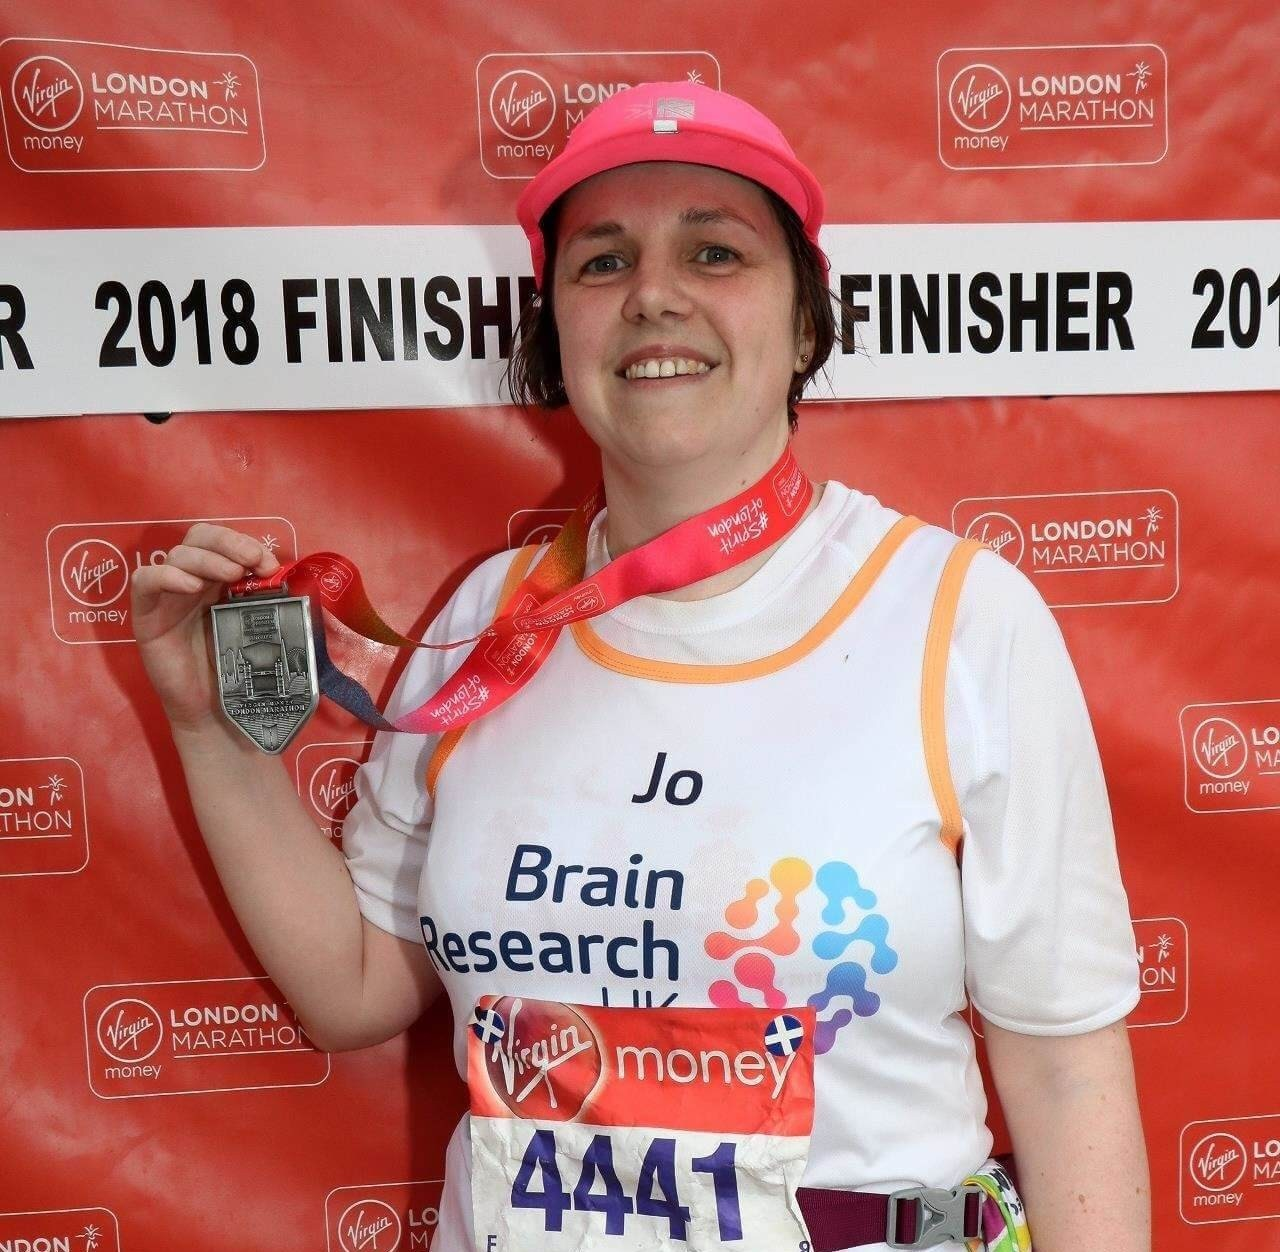 Jo following her completion of 2018 London Marathon